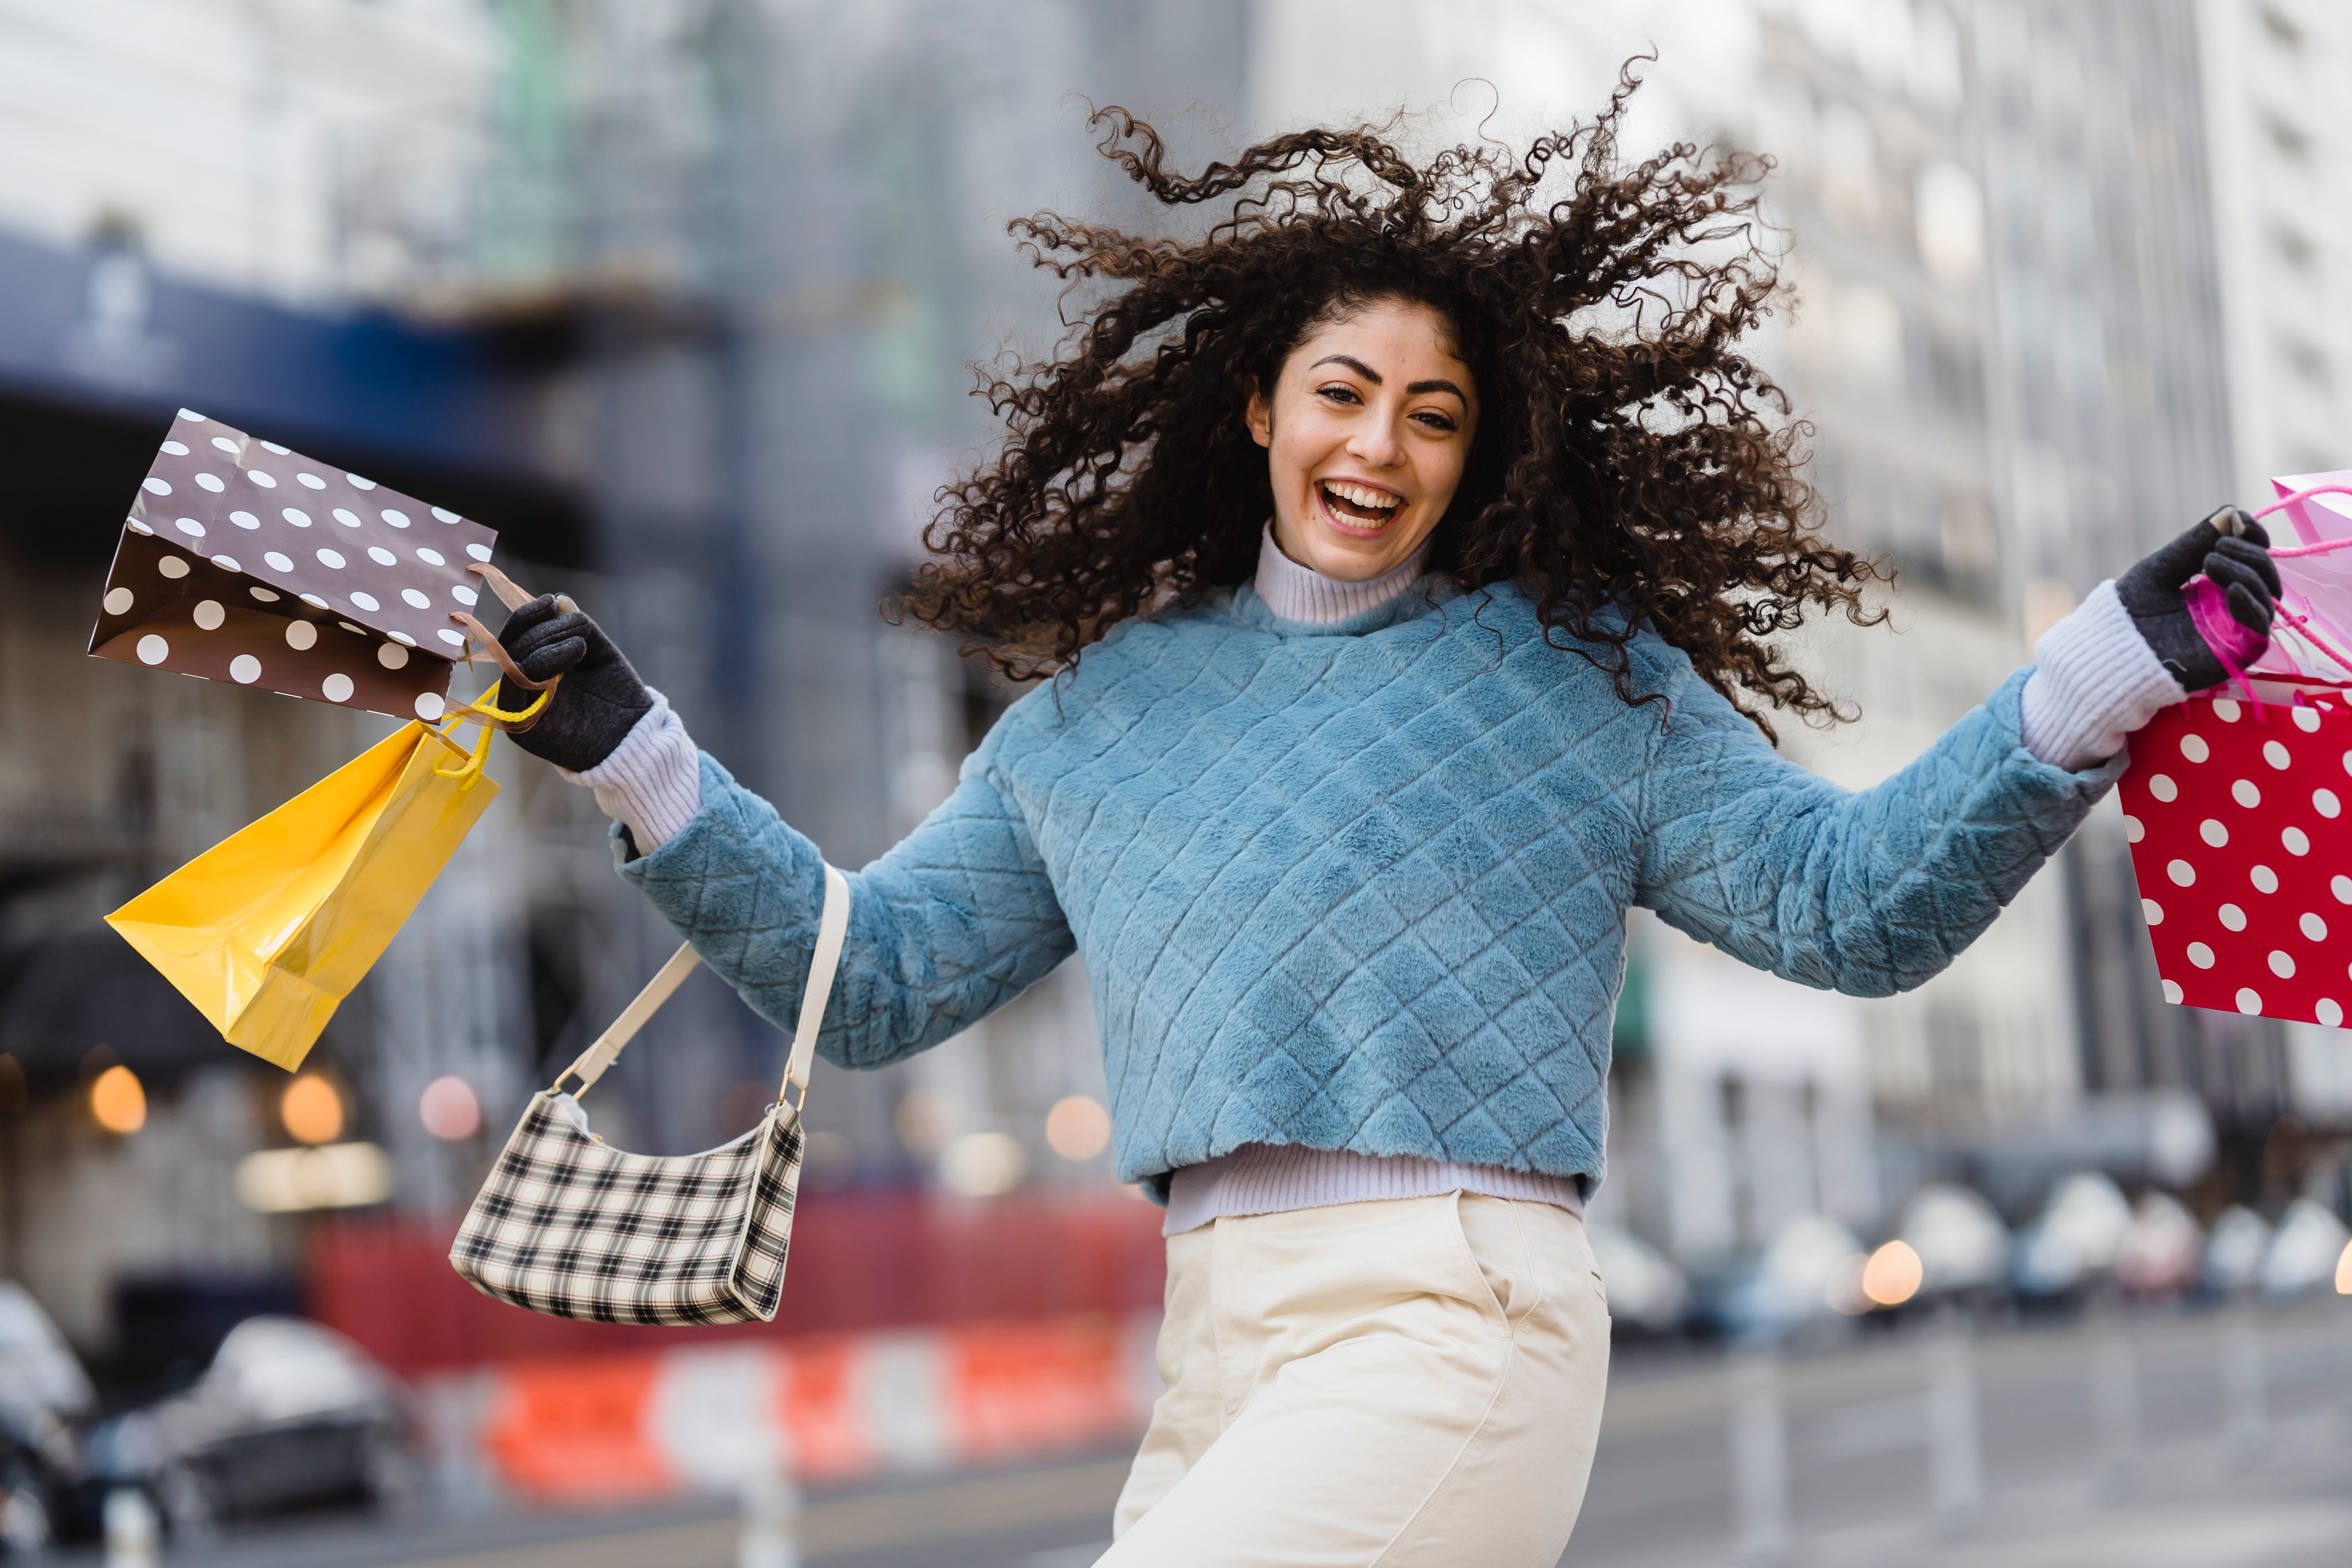 A happy woman with shopping bags